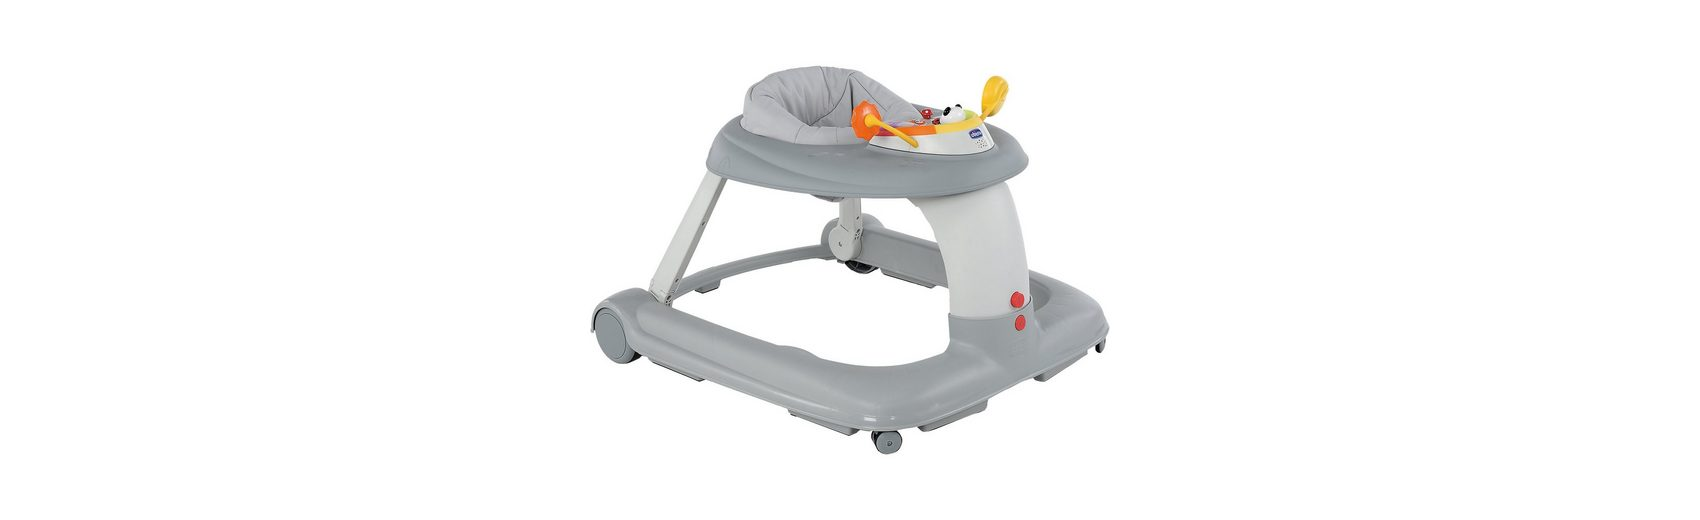 CHICCO Lauflernhilfe Activity-Center 123, silver